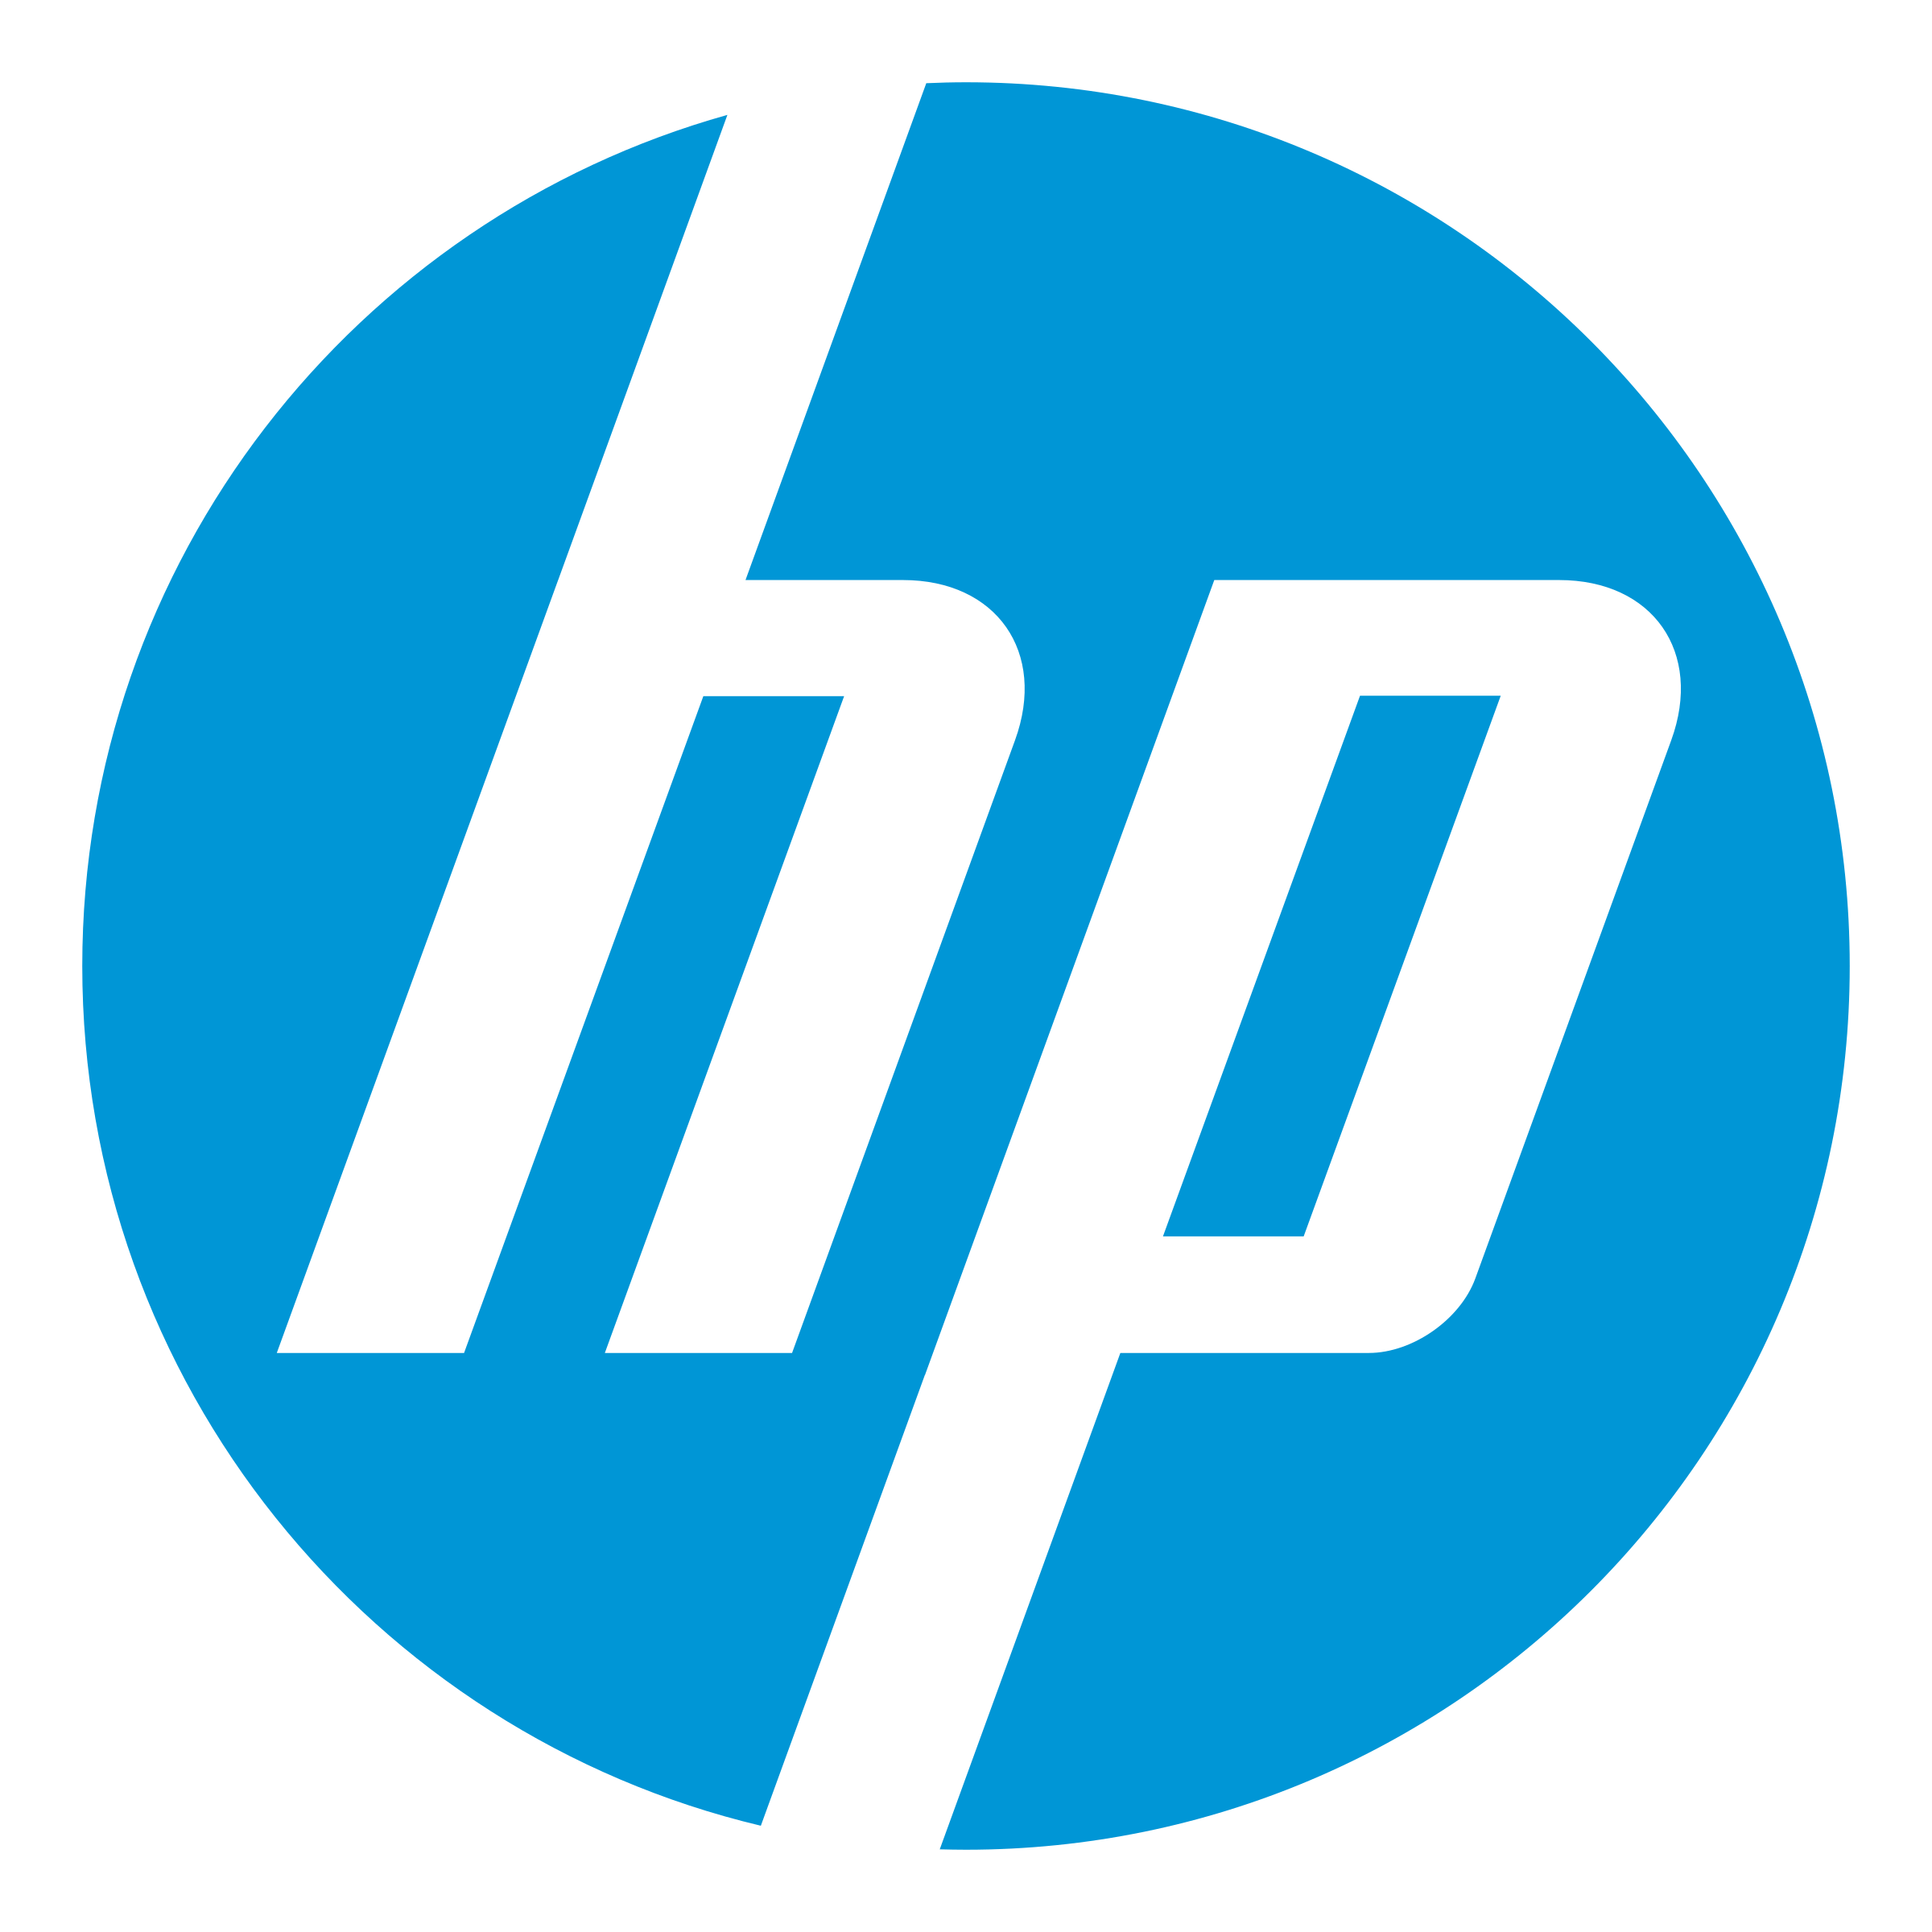 Hewlett Packard HP logo